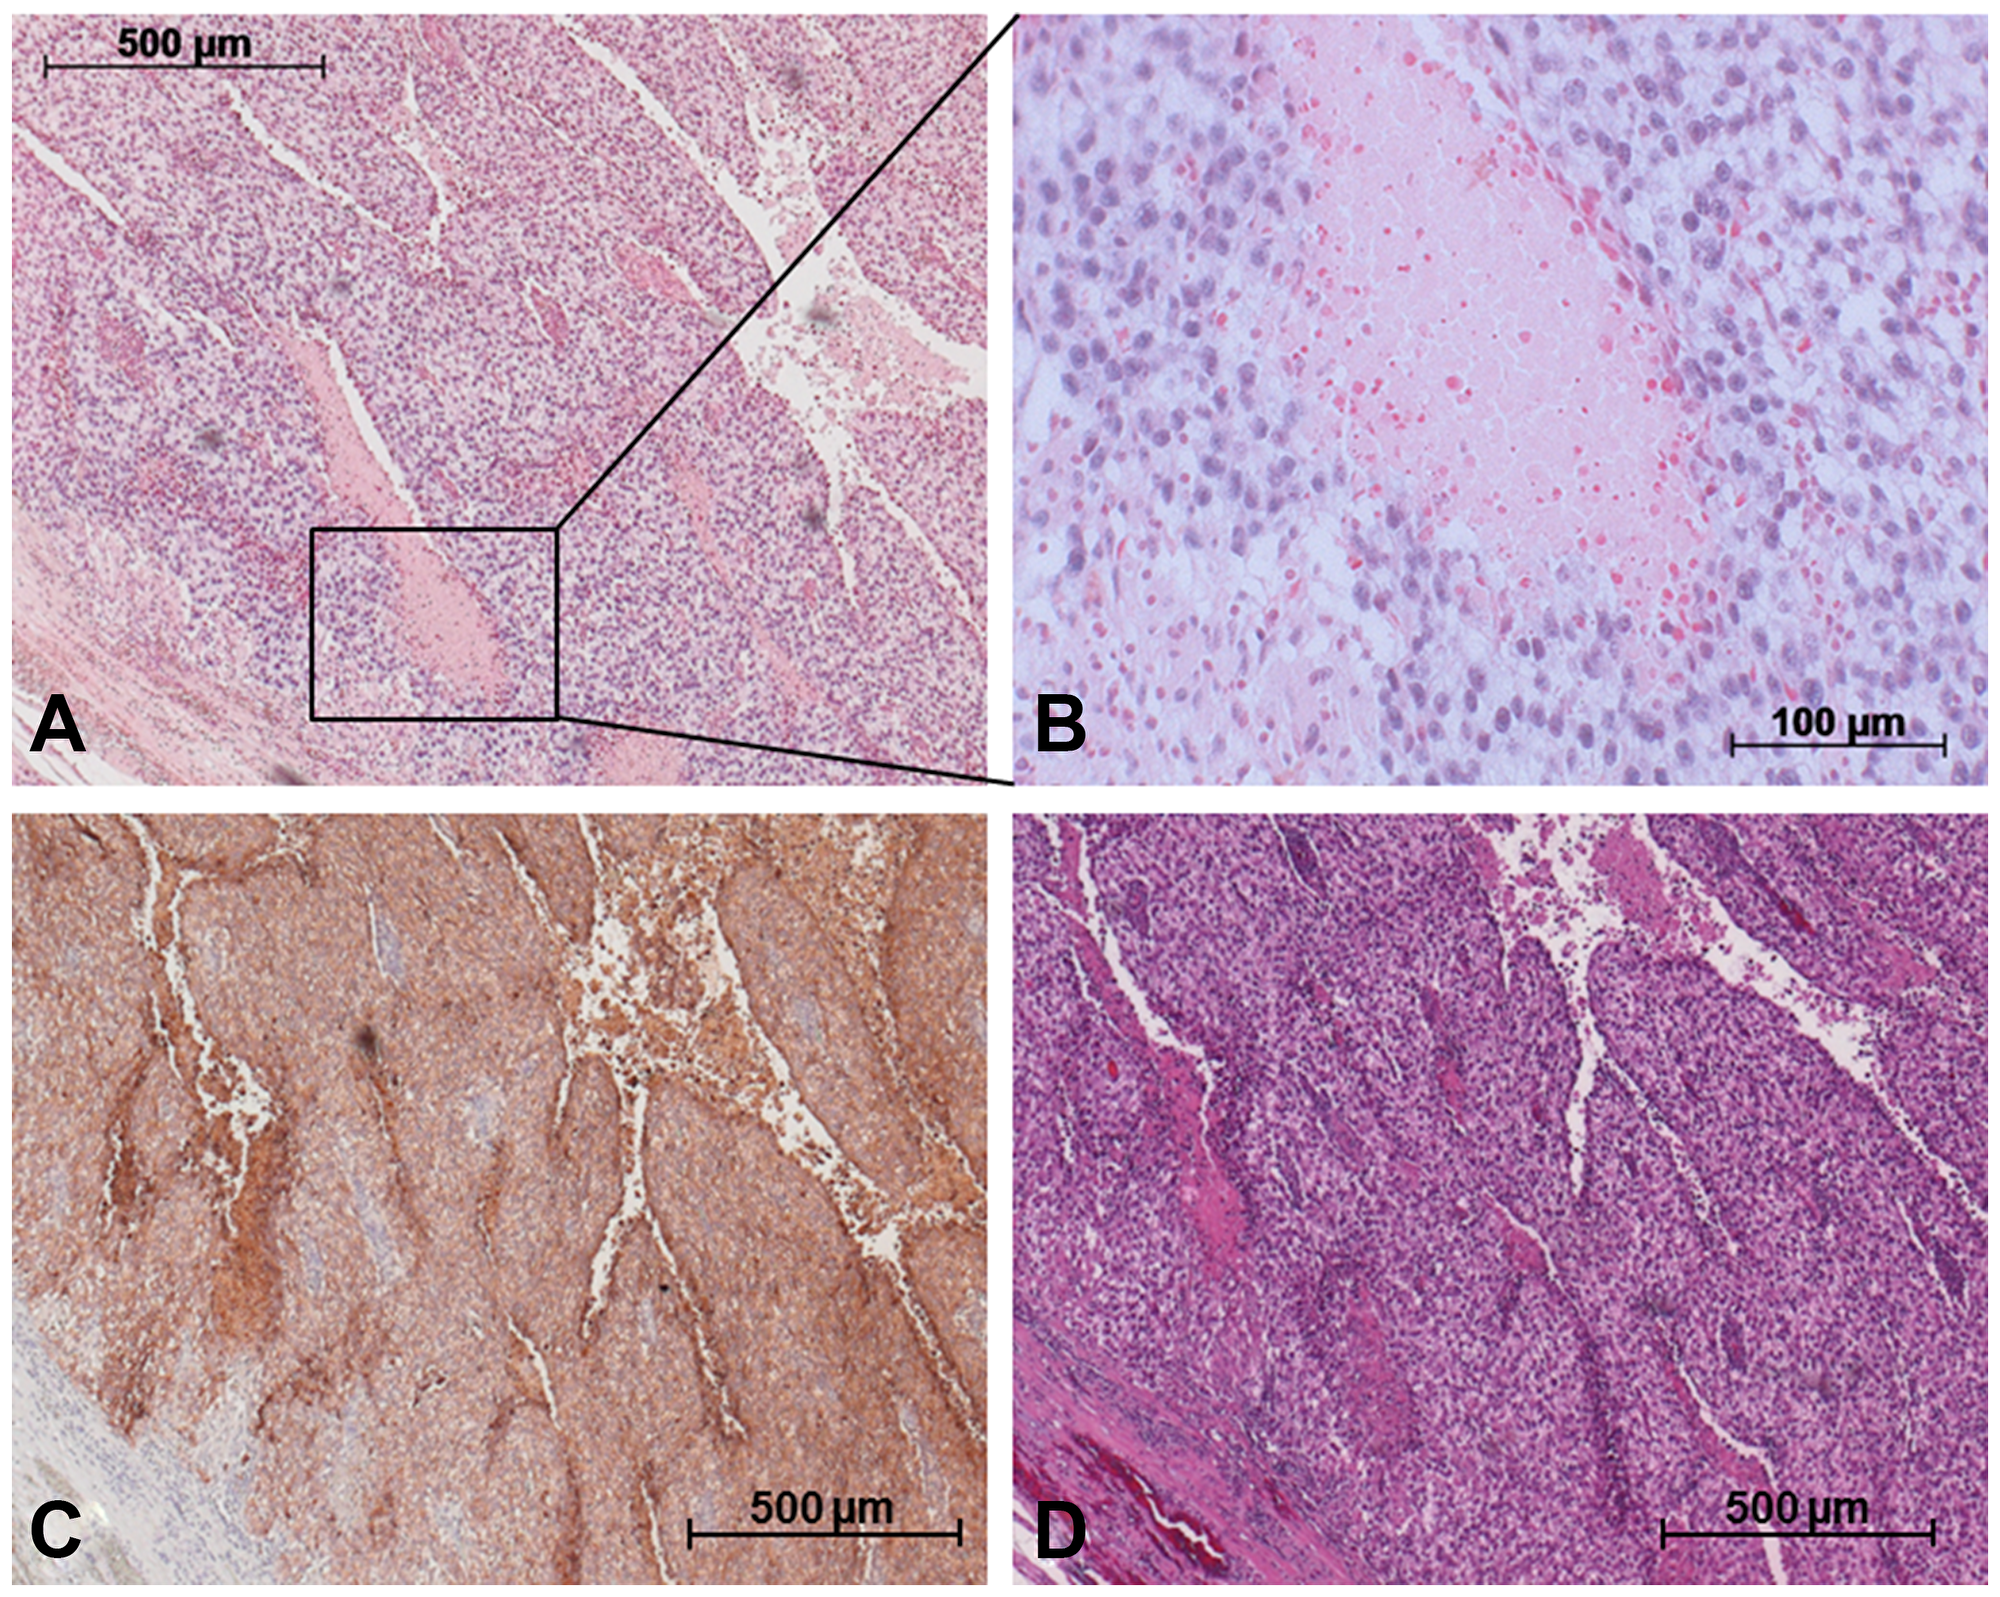 Detection of miR-371a-3p in GCT mixed tumor including SE and YST via in situ hybridization.